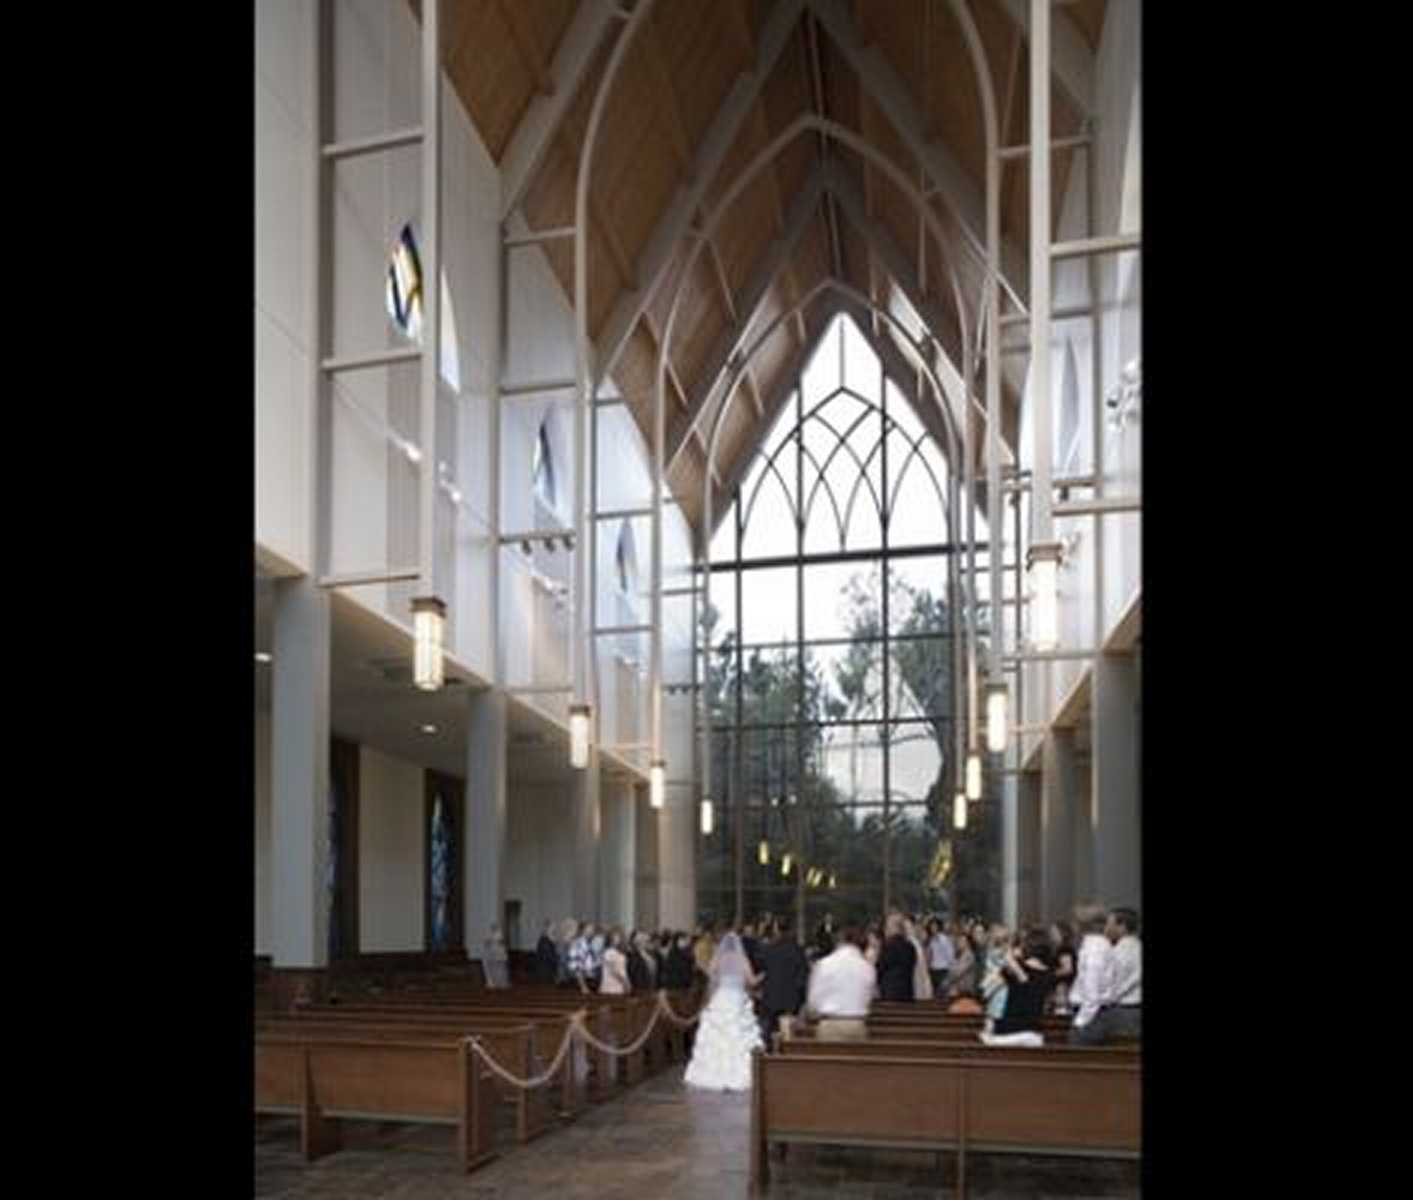 Woodlands church architect studio red architects - Interior designers the woodlands tx ...